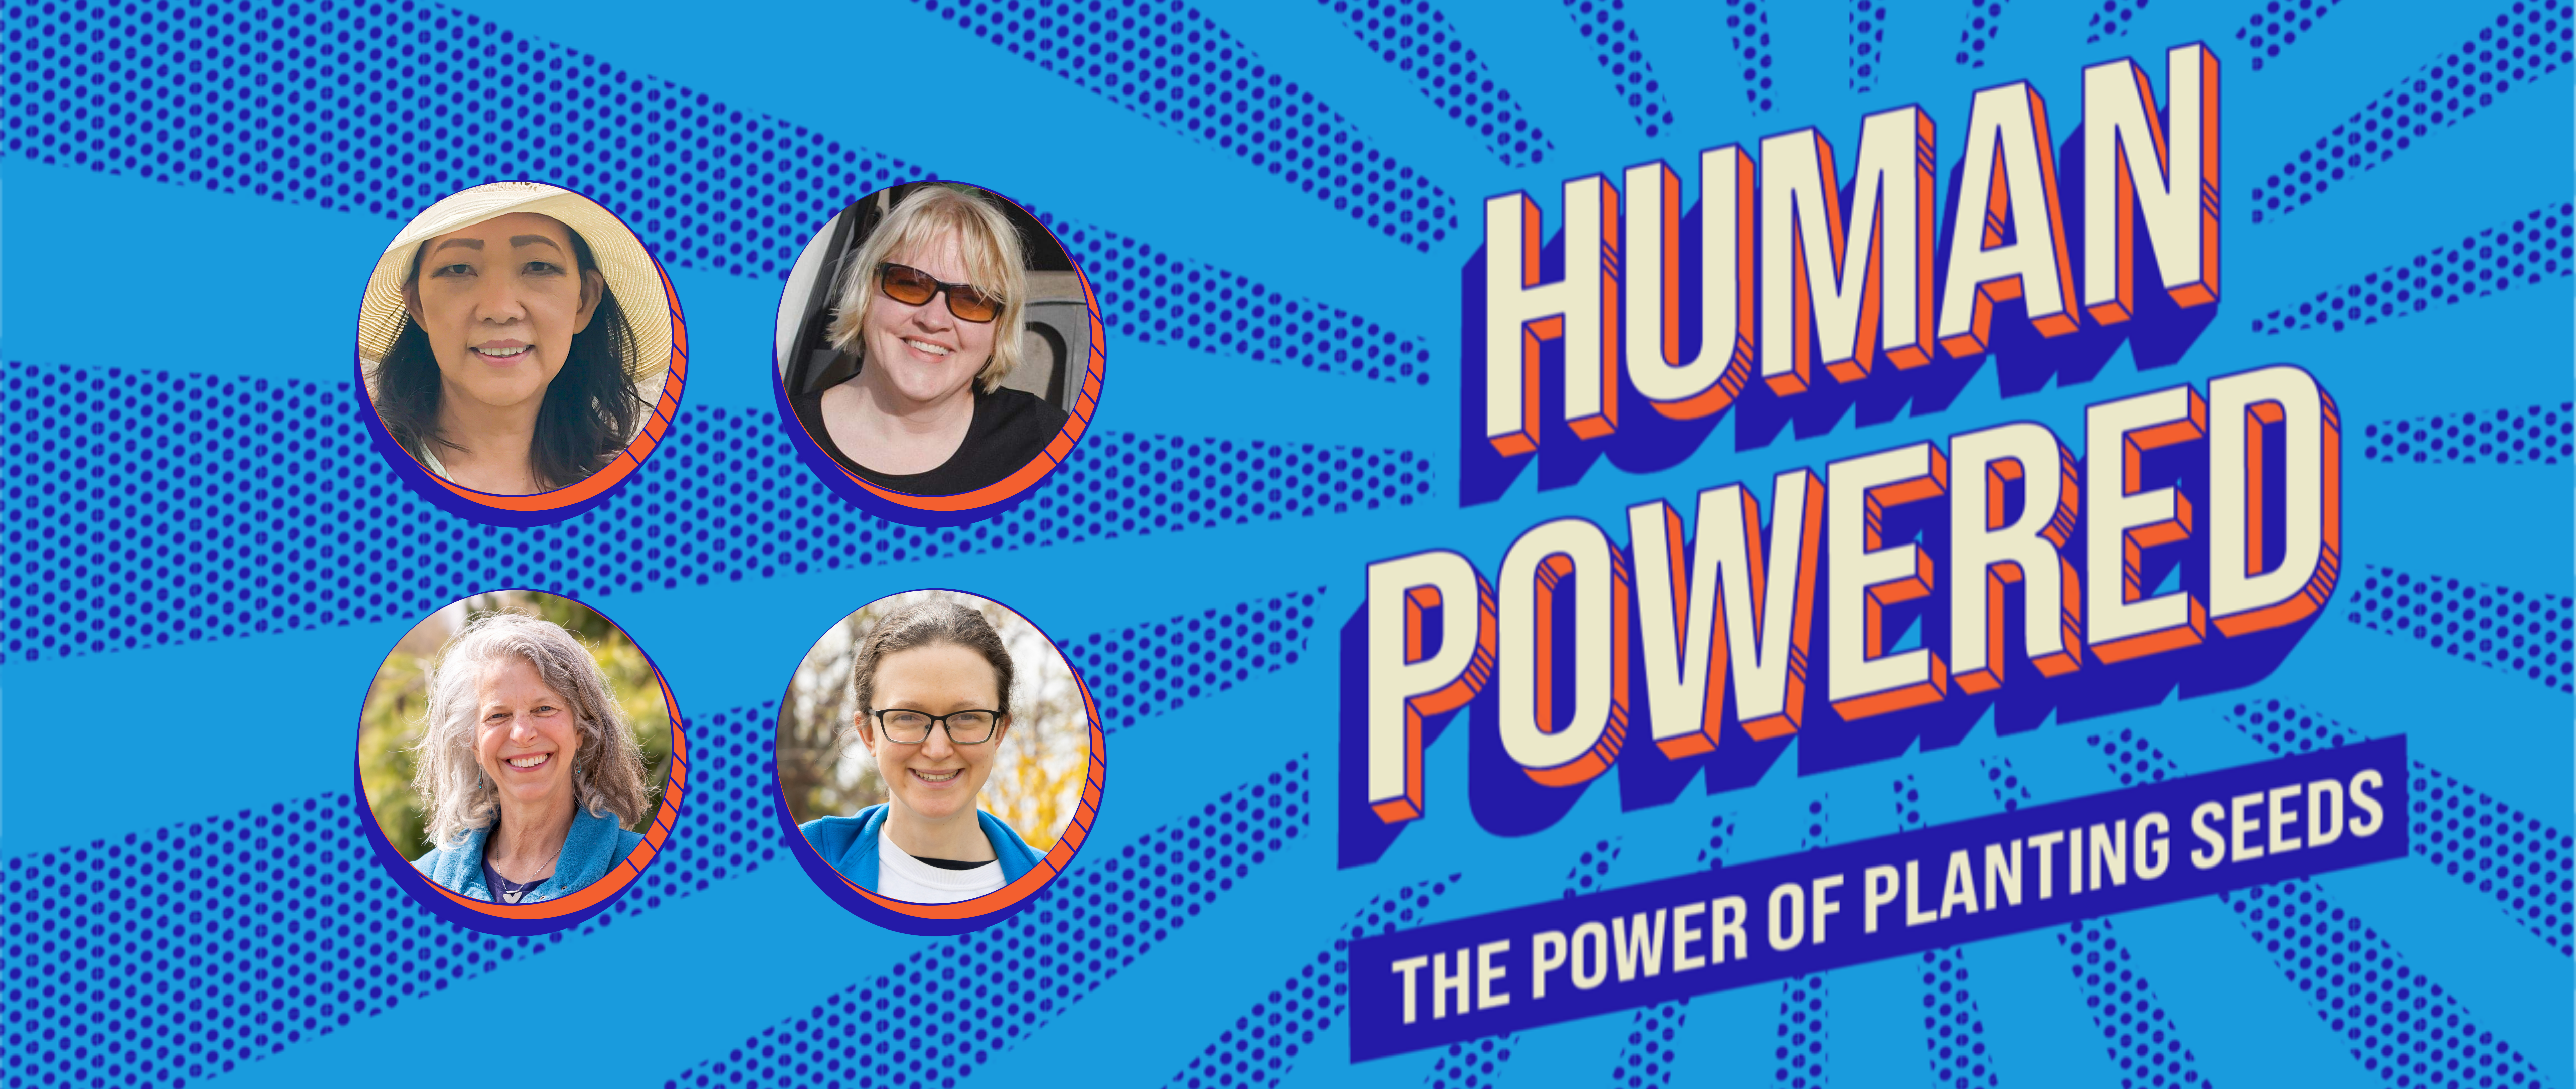 Human Powered: The power of planting seeds (Header image)